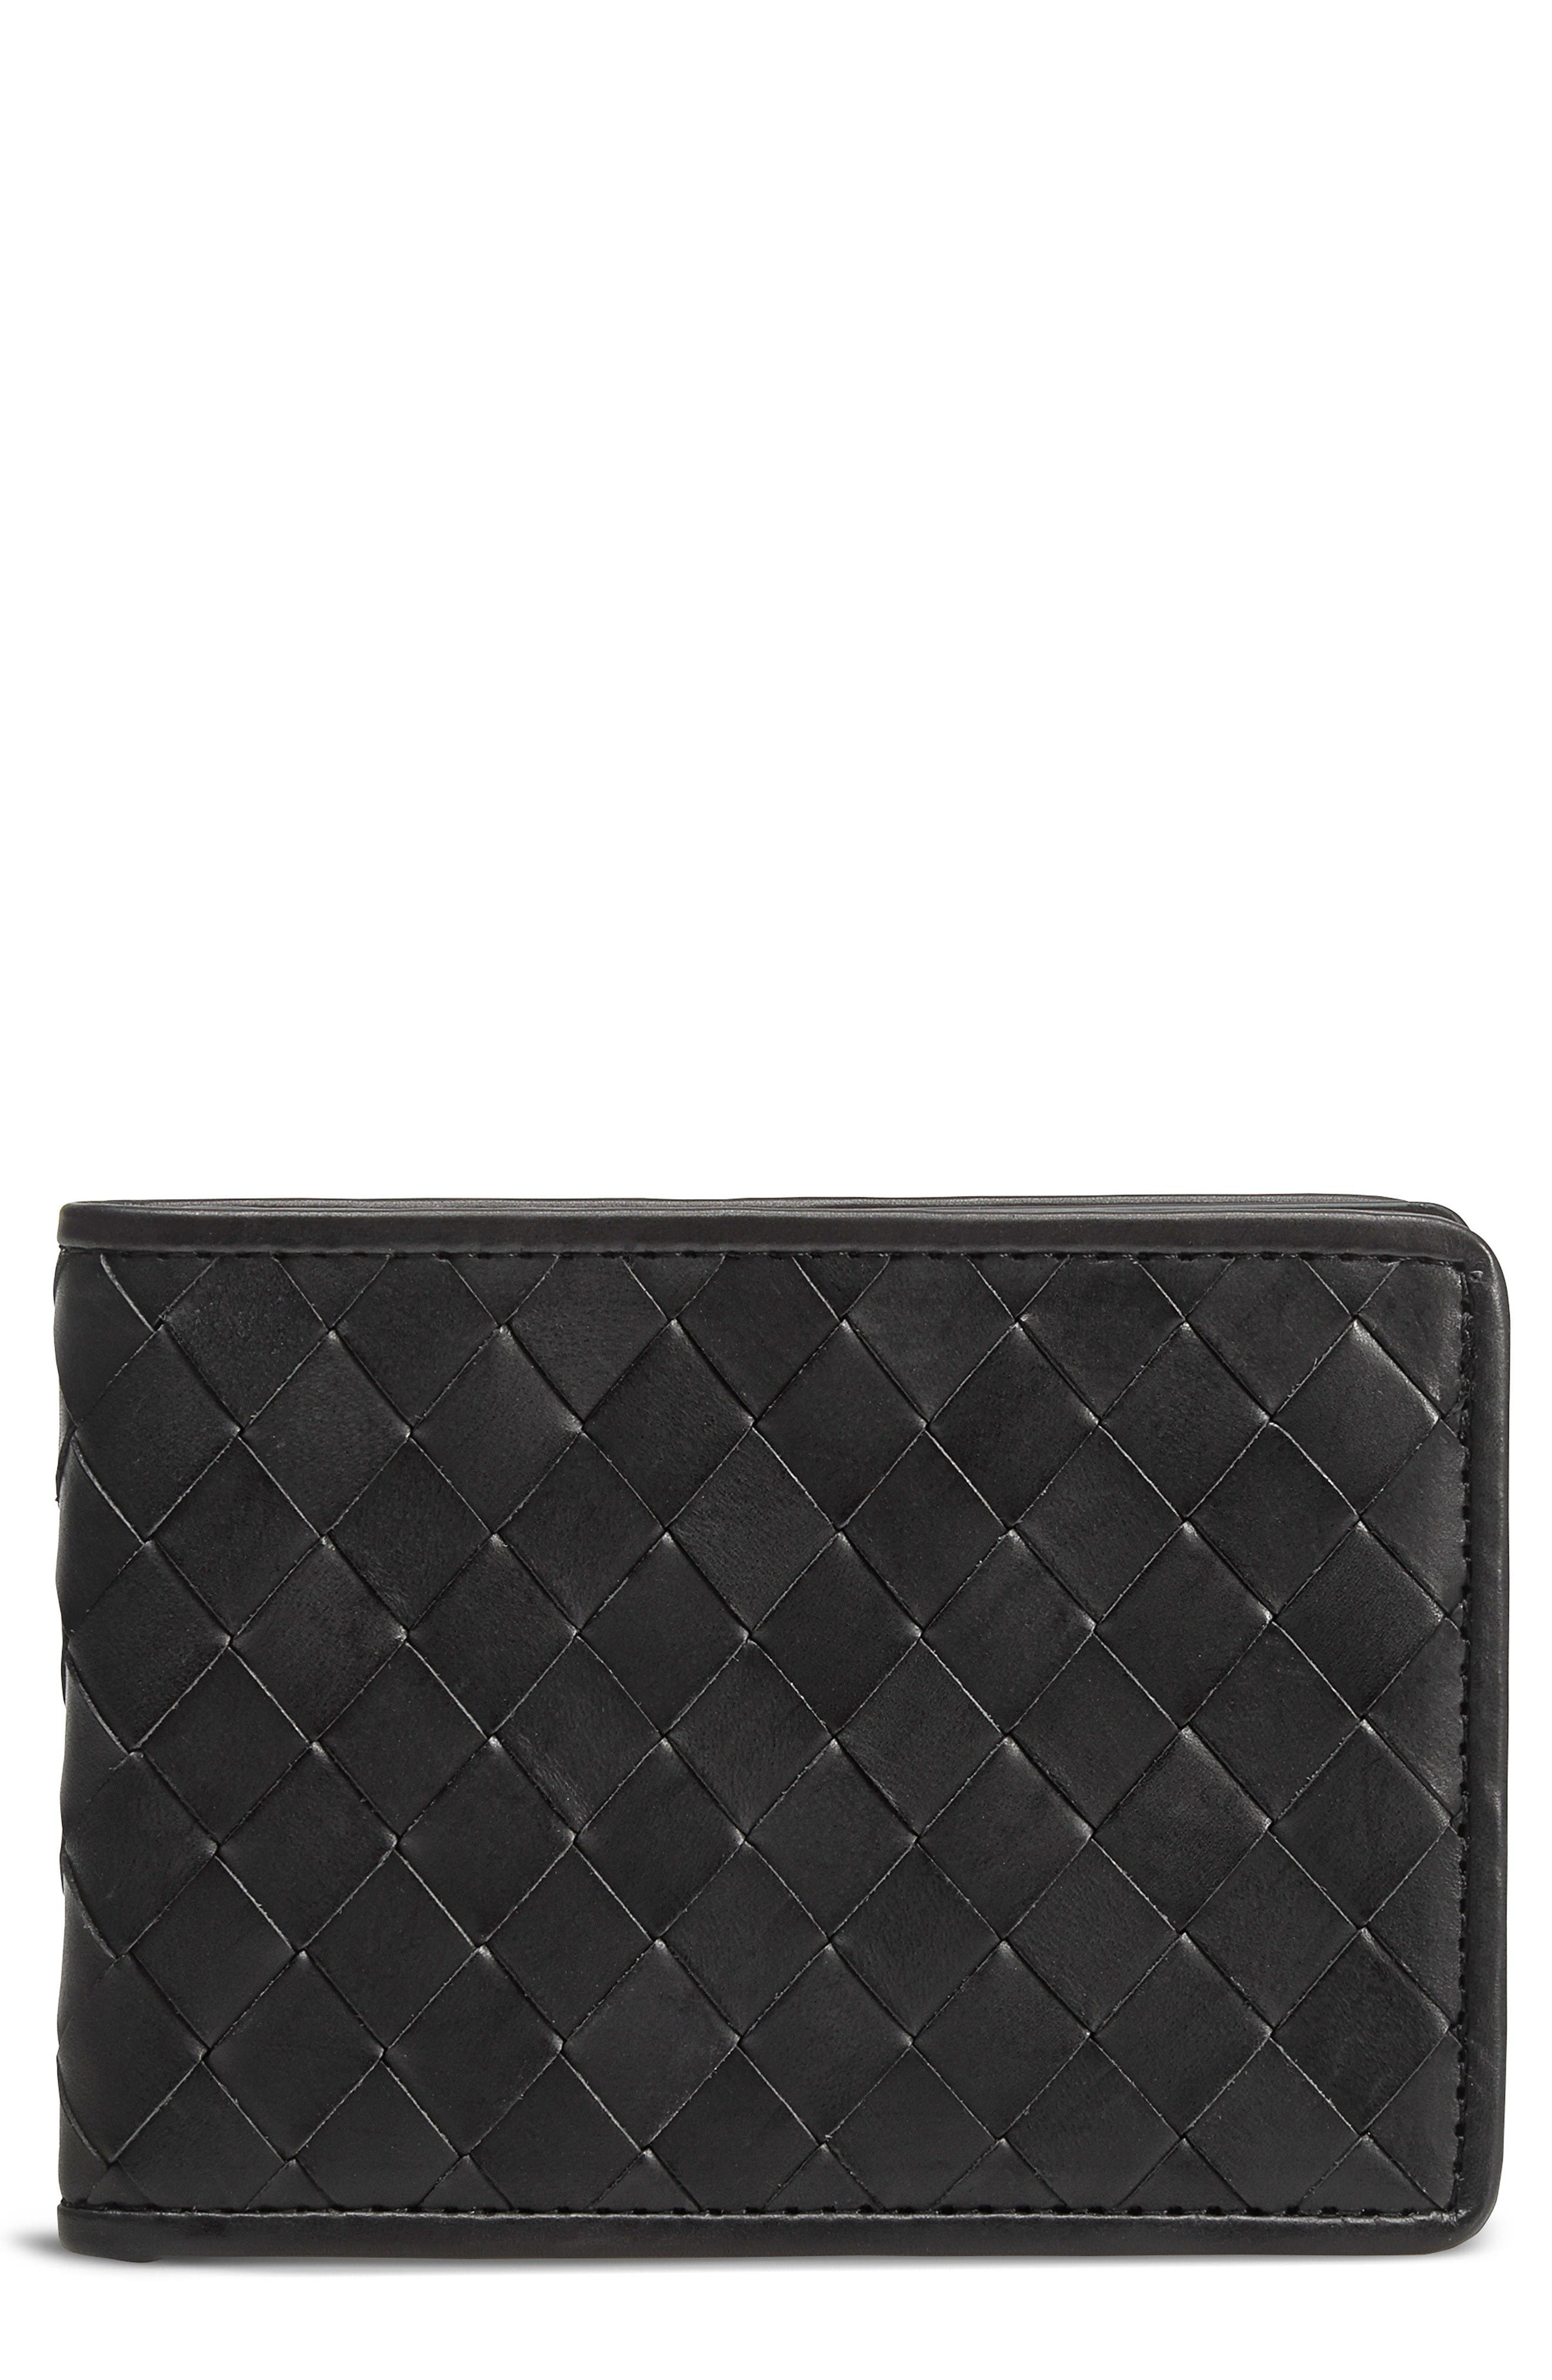 Woven Leather Wallet,                             Main thumbnail 1, color,                             Black